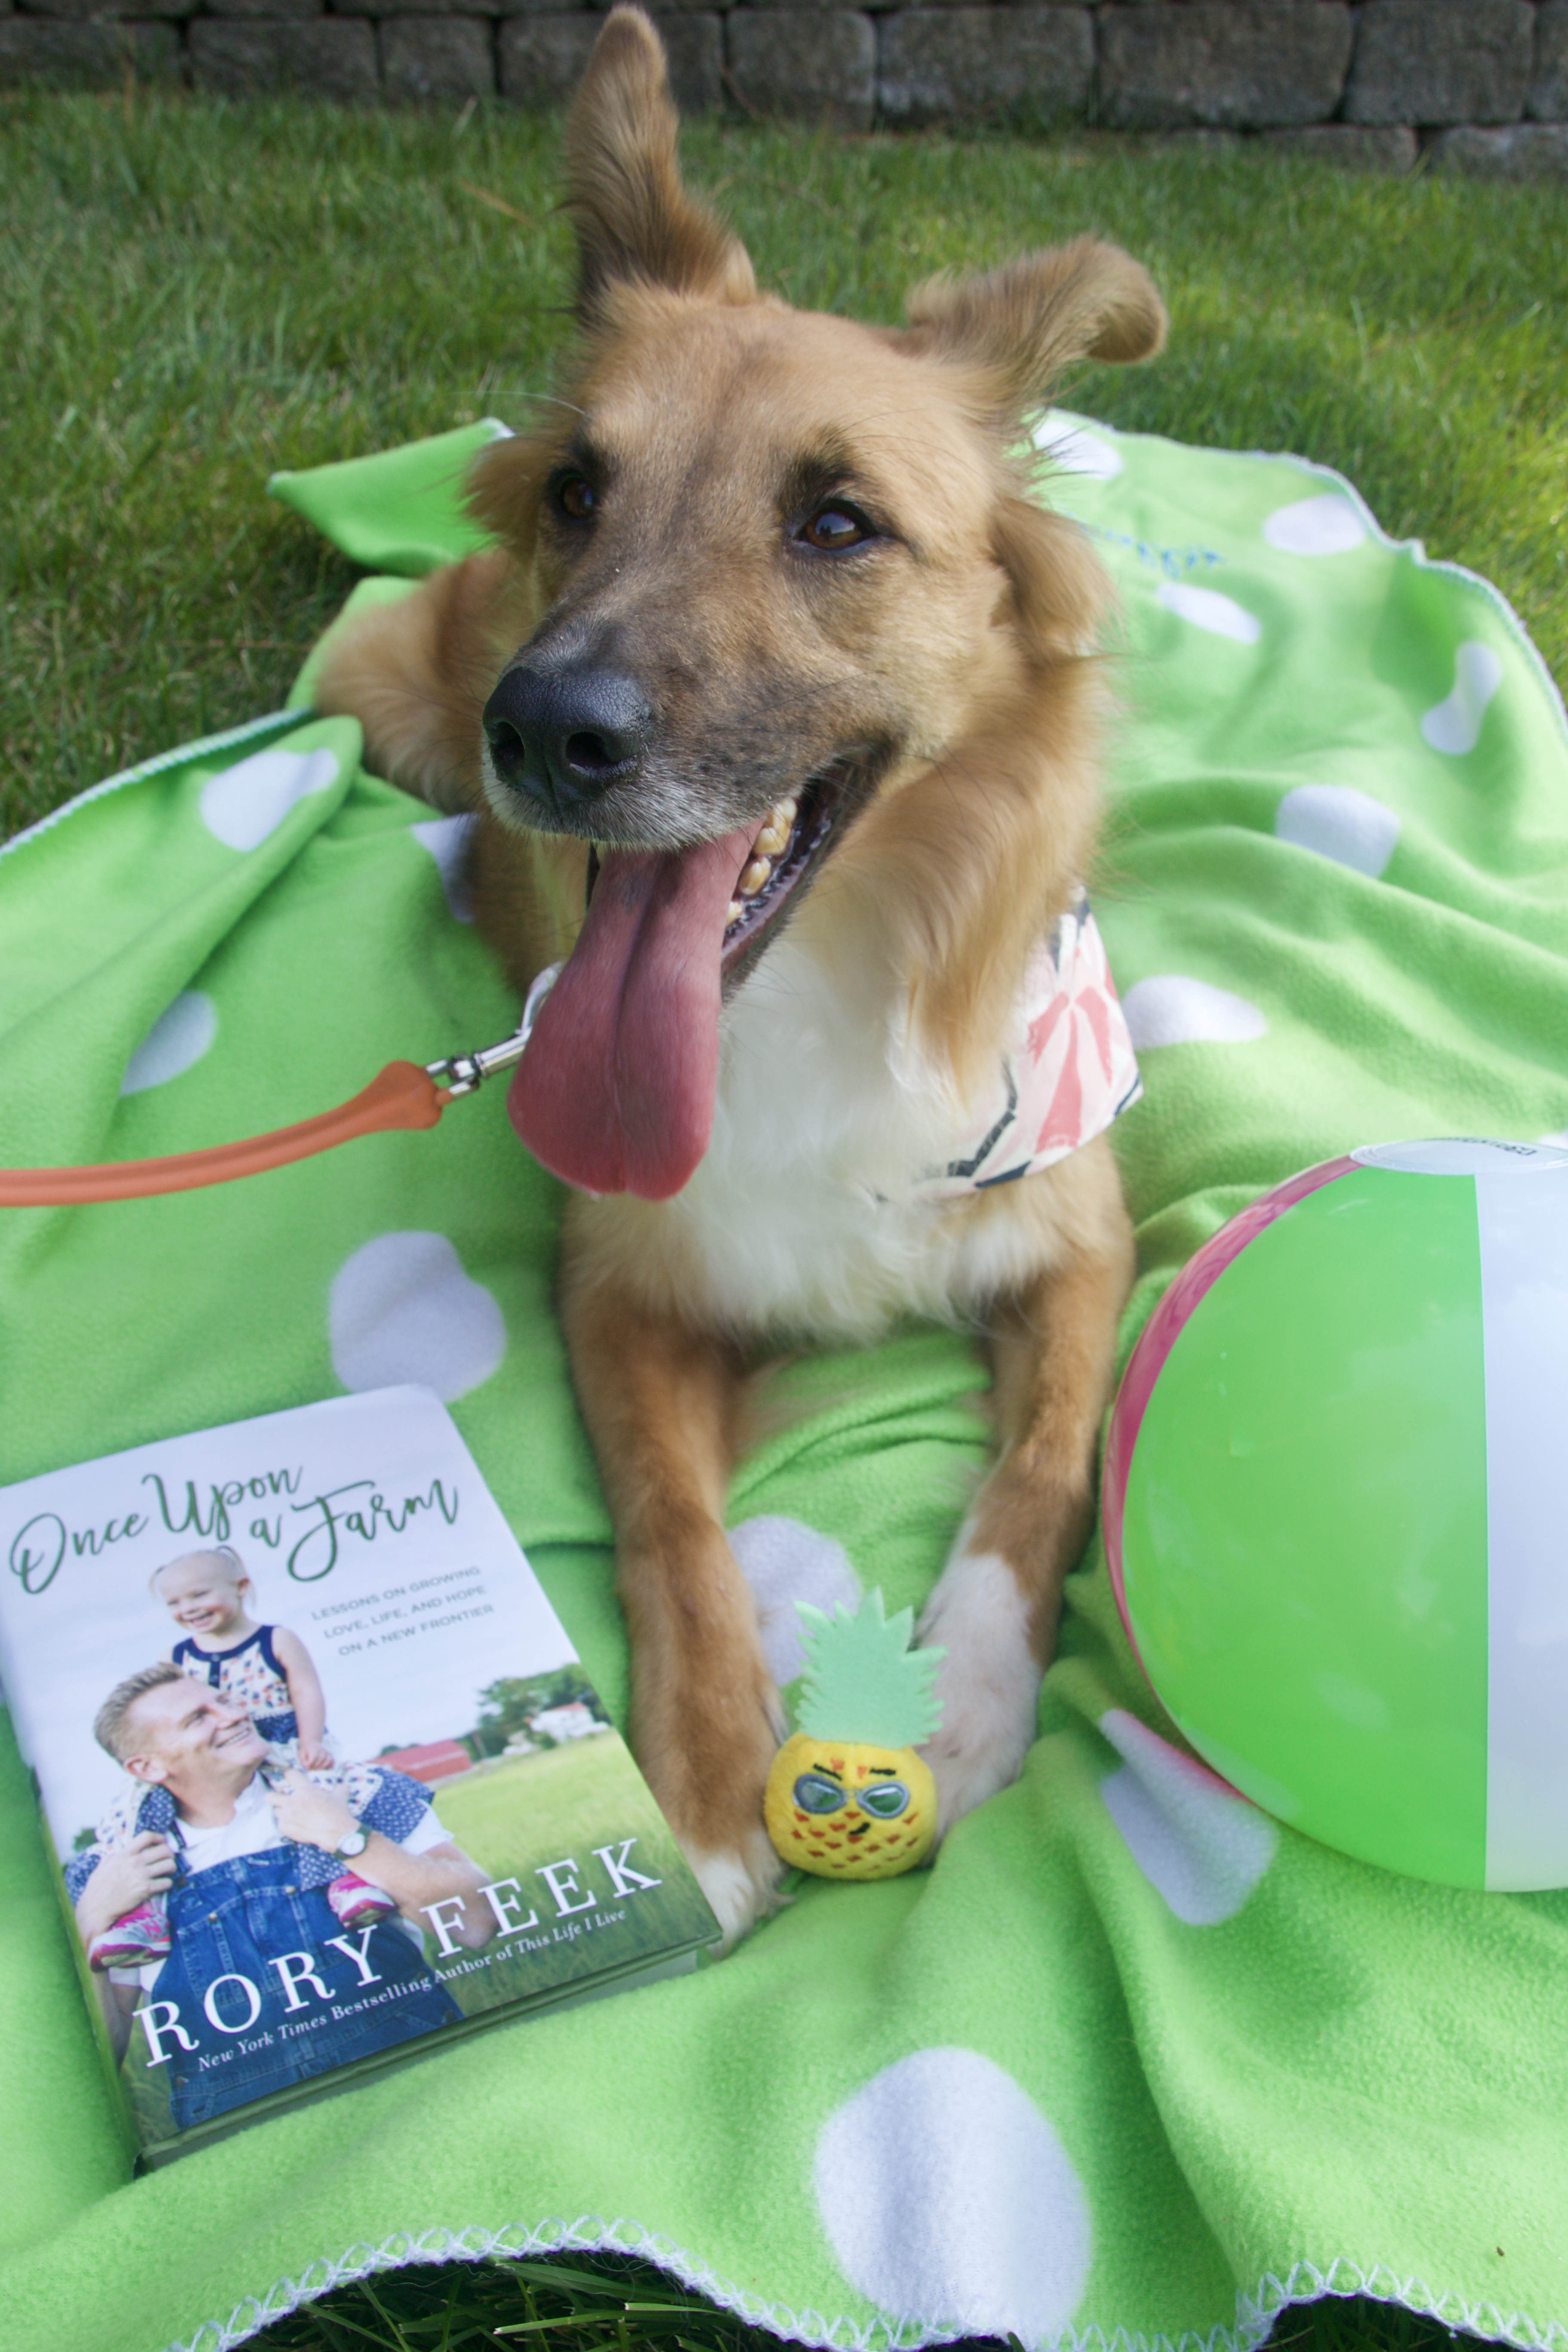 dog days of summer, dog with Rory feek, once upon a farm